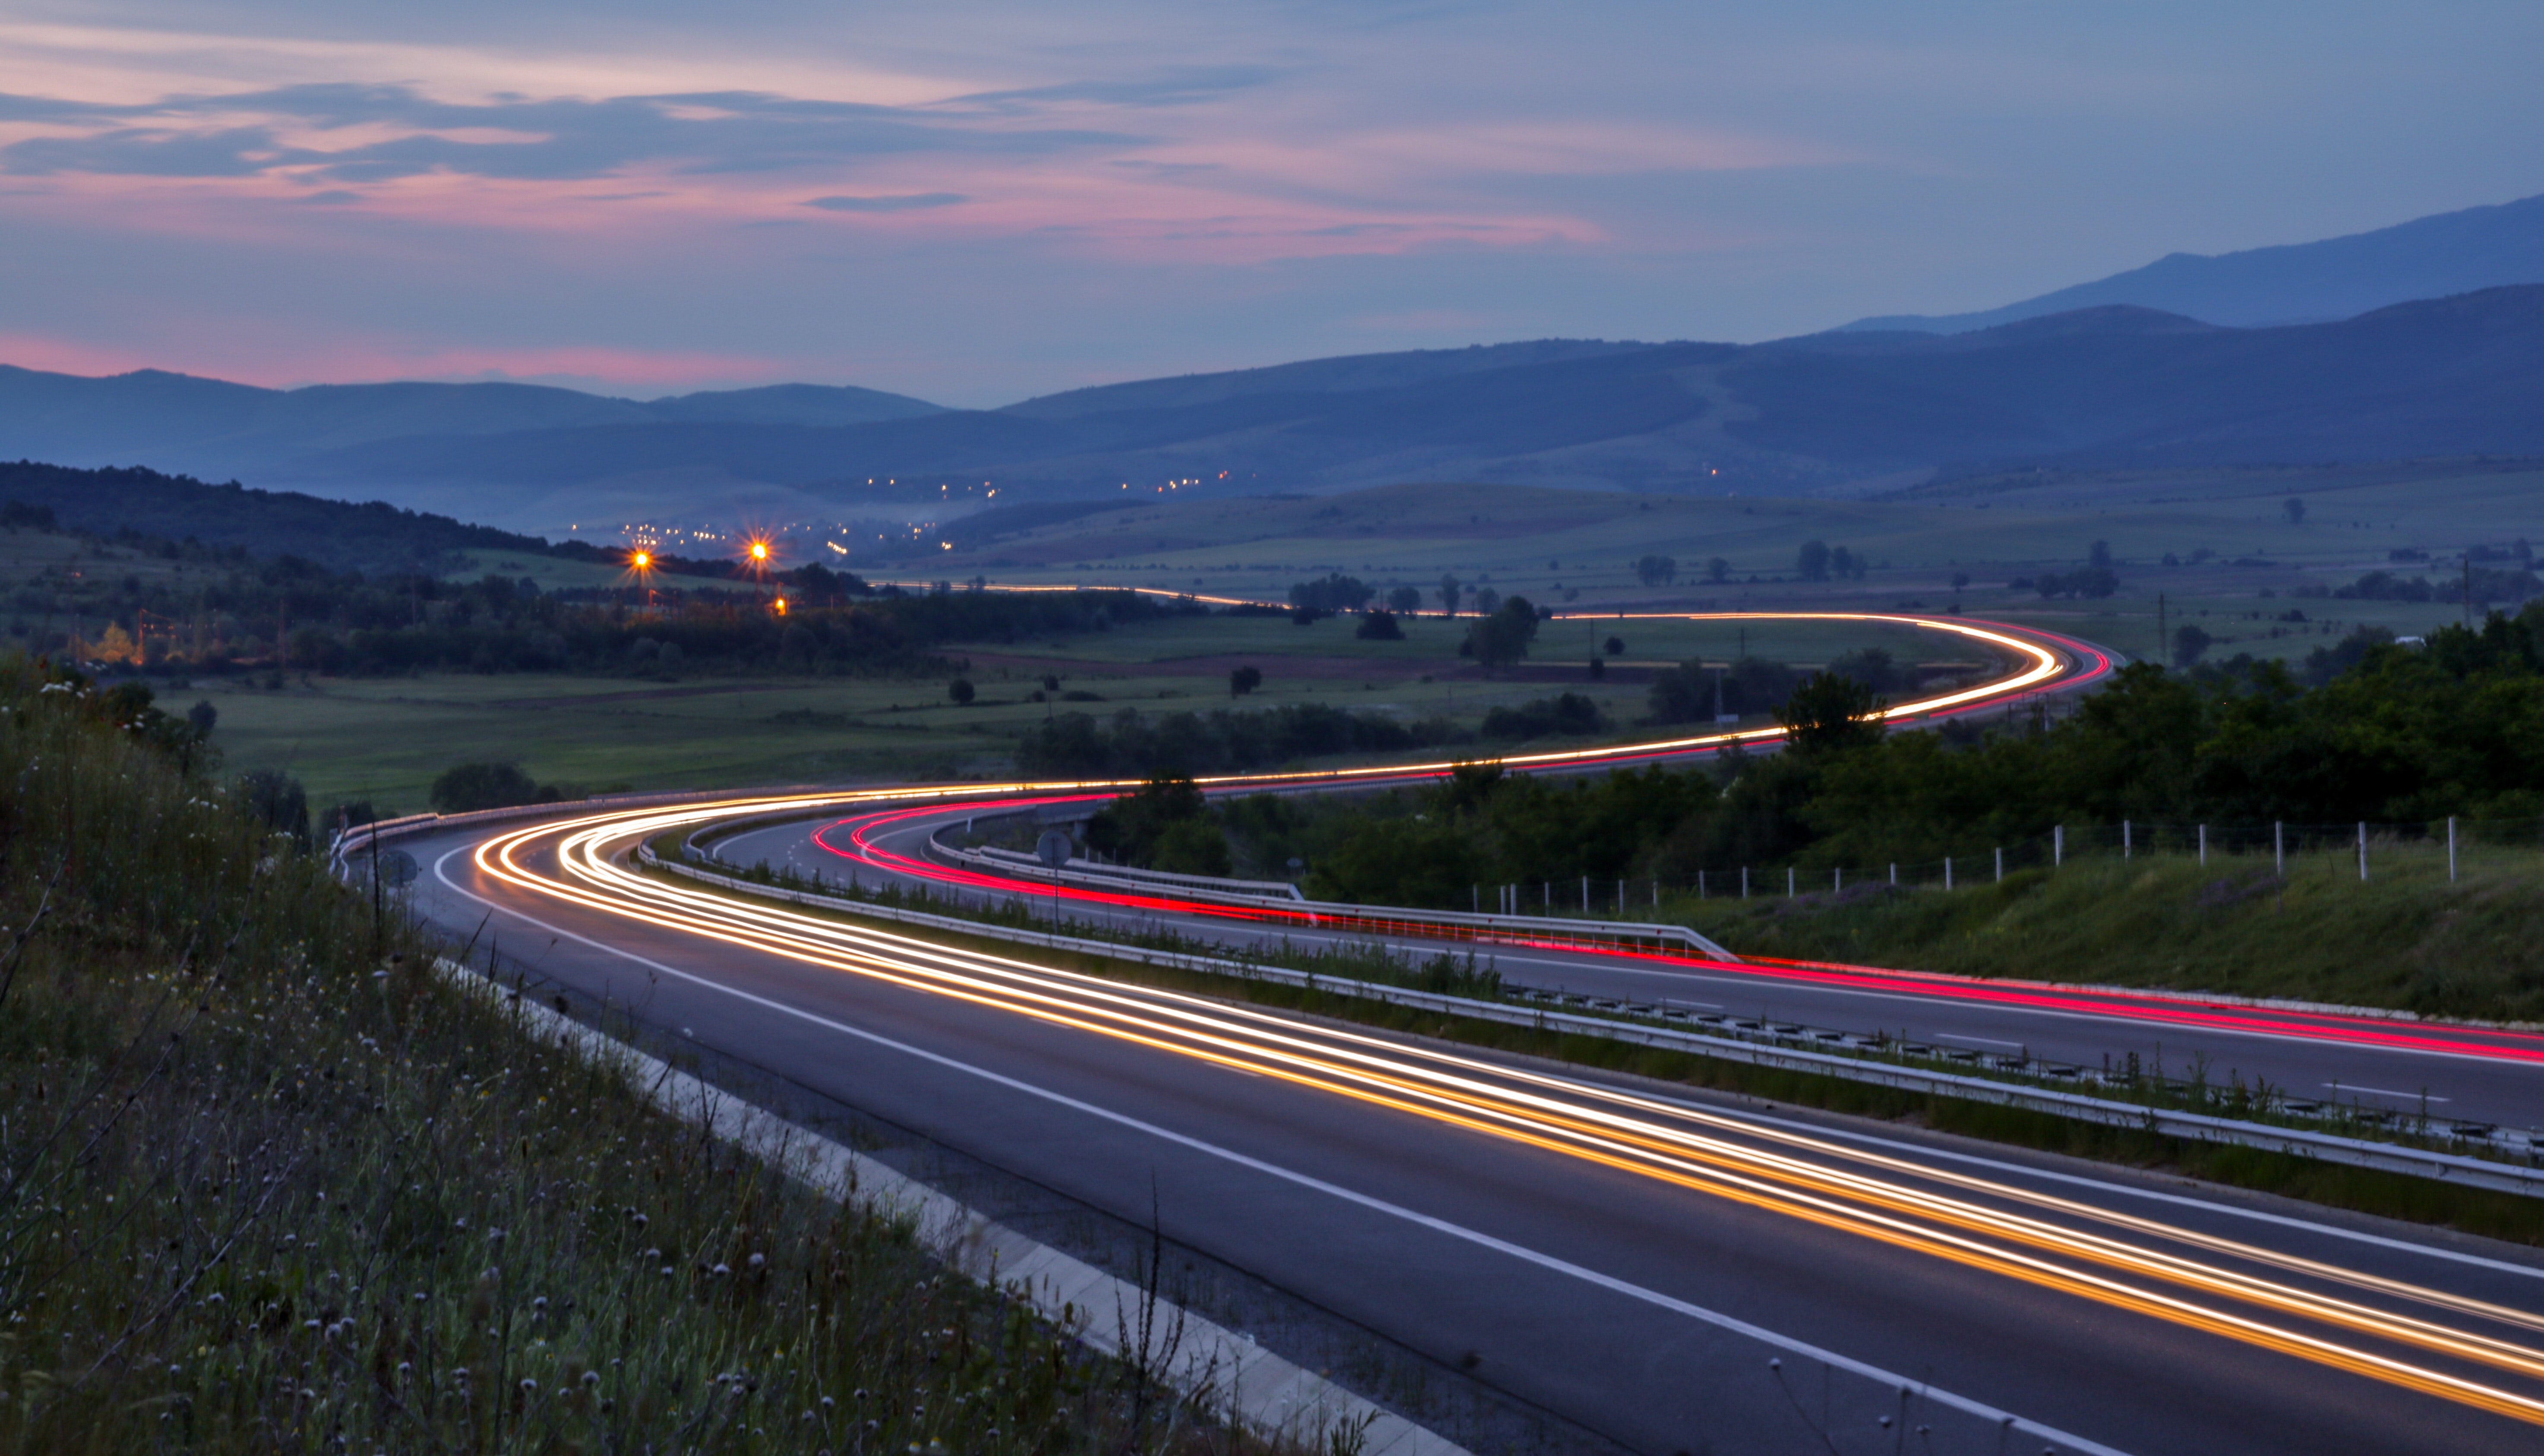 Car light trails on a winding highway in the green valley